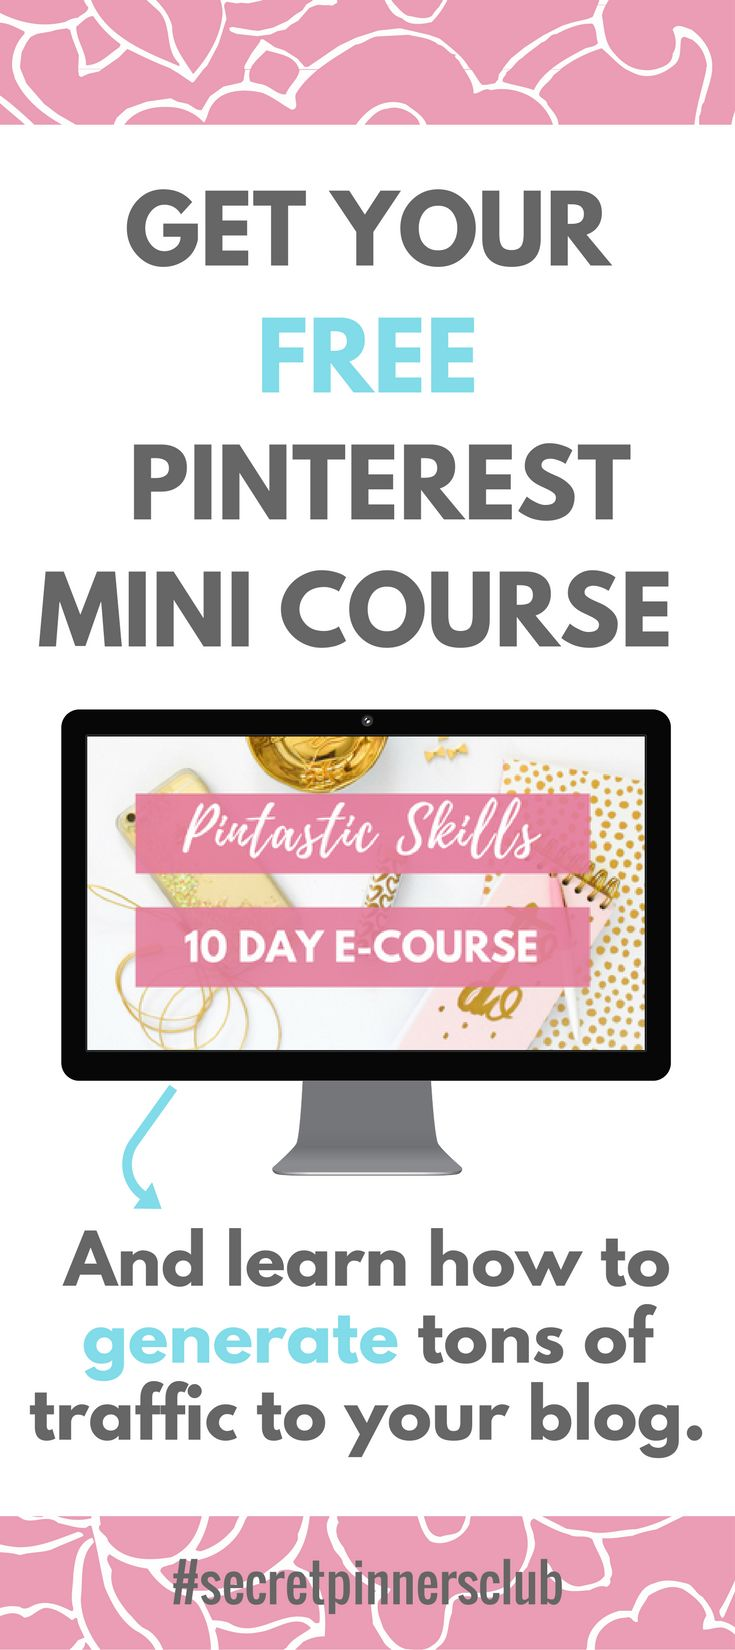 Learn how to use Pinterest to generate tons of traffic to your blog. This free 10-day course walks you through setting up a solid foundation for success on Pinterest along with my best tips and tricks.